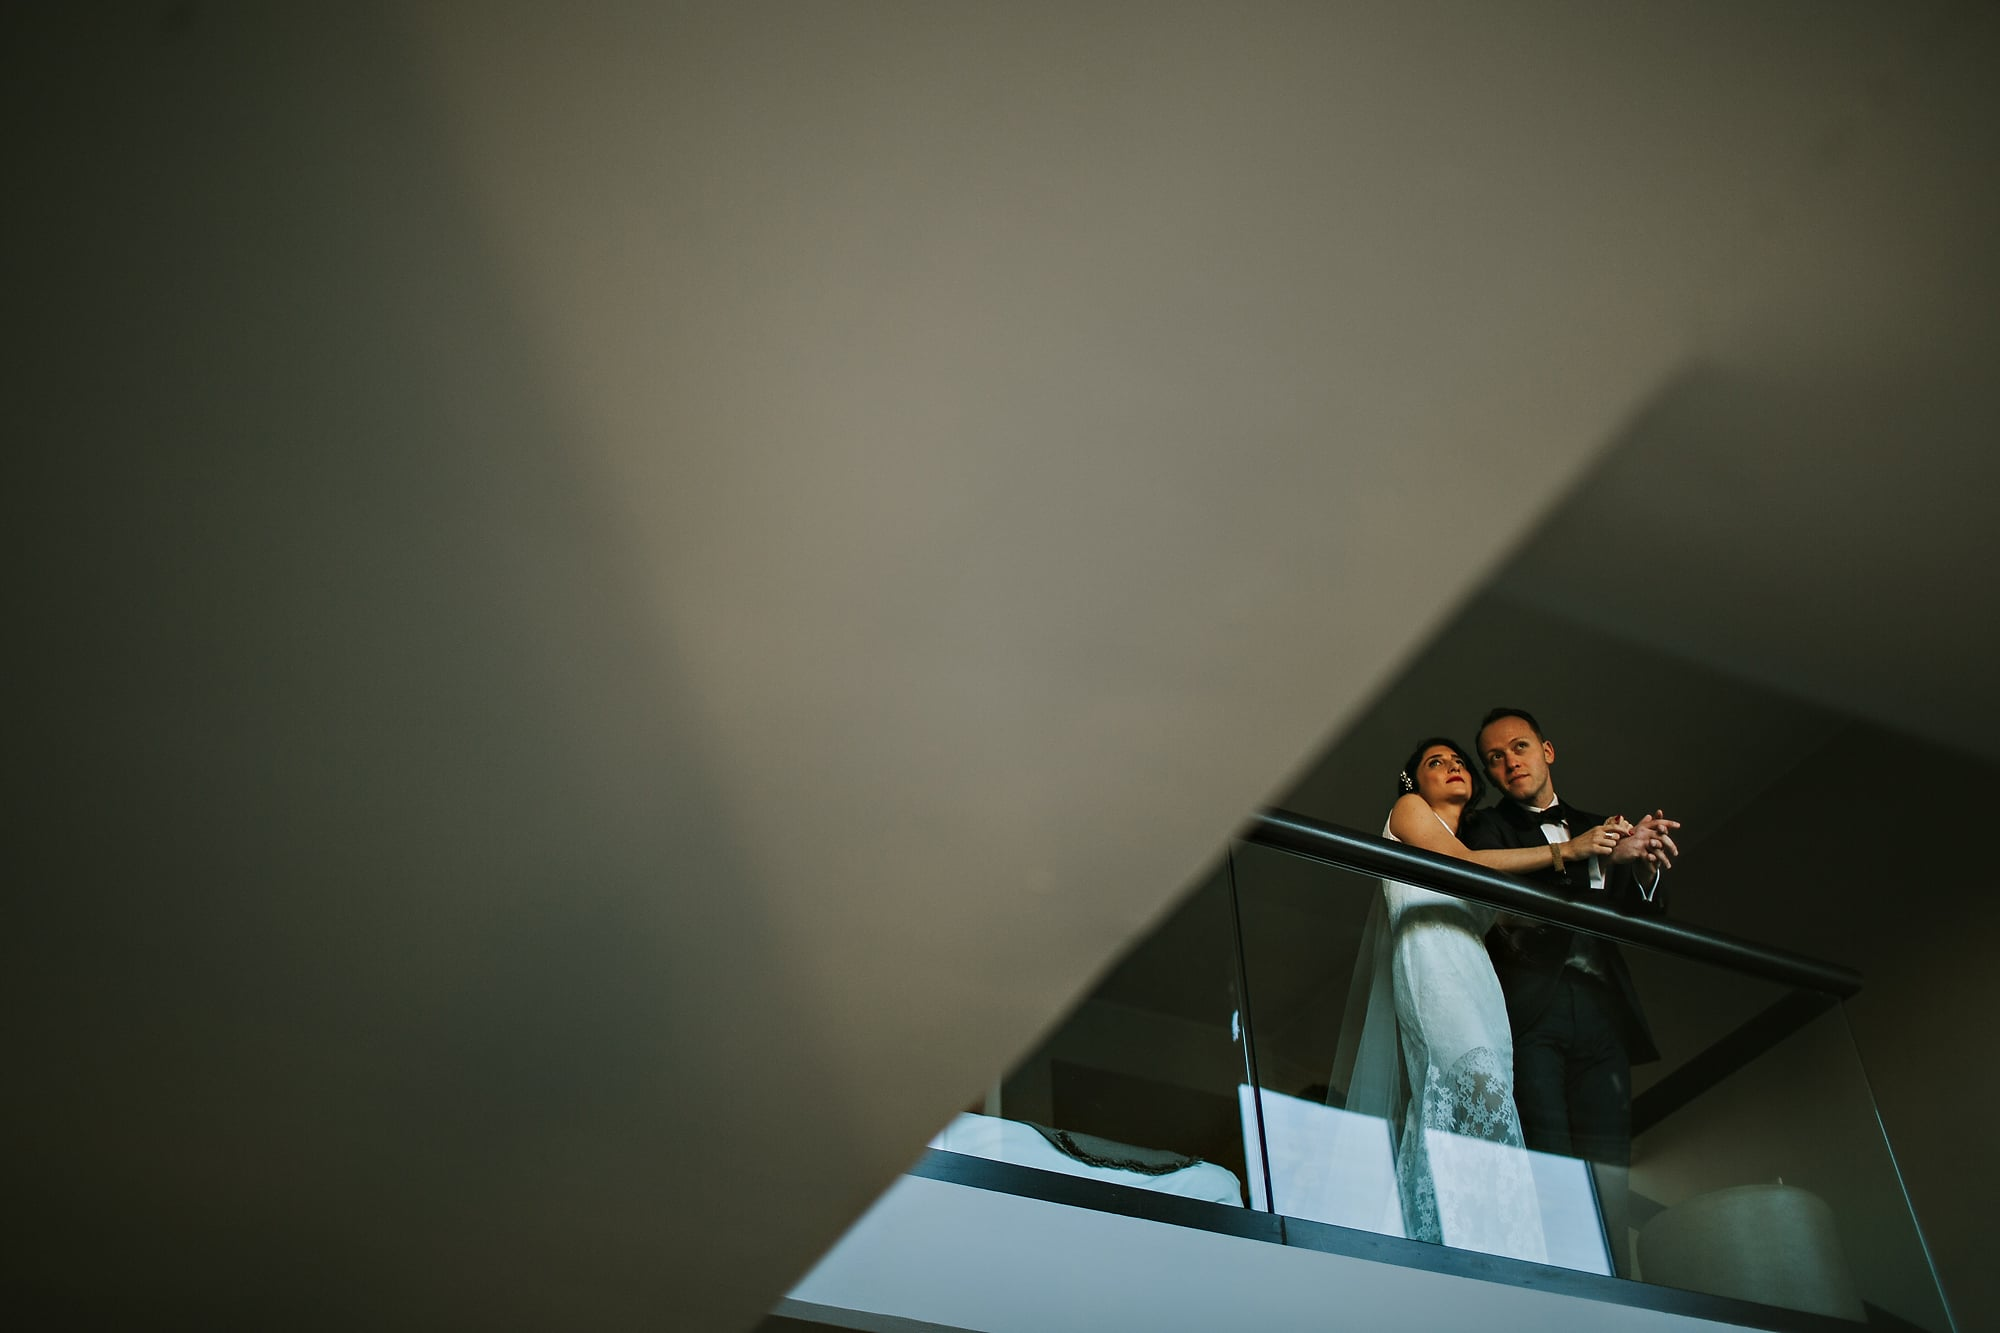 rachel gulotta photography Chicago Wedding-43.jpg